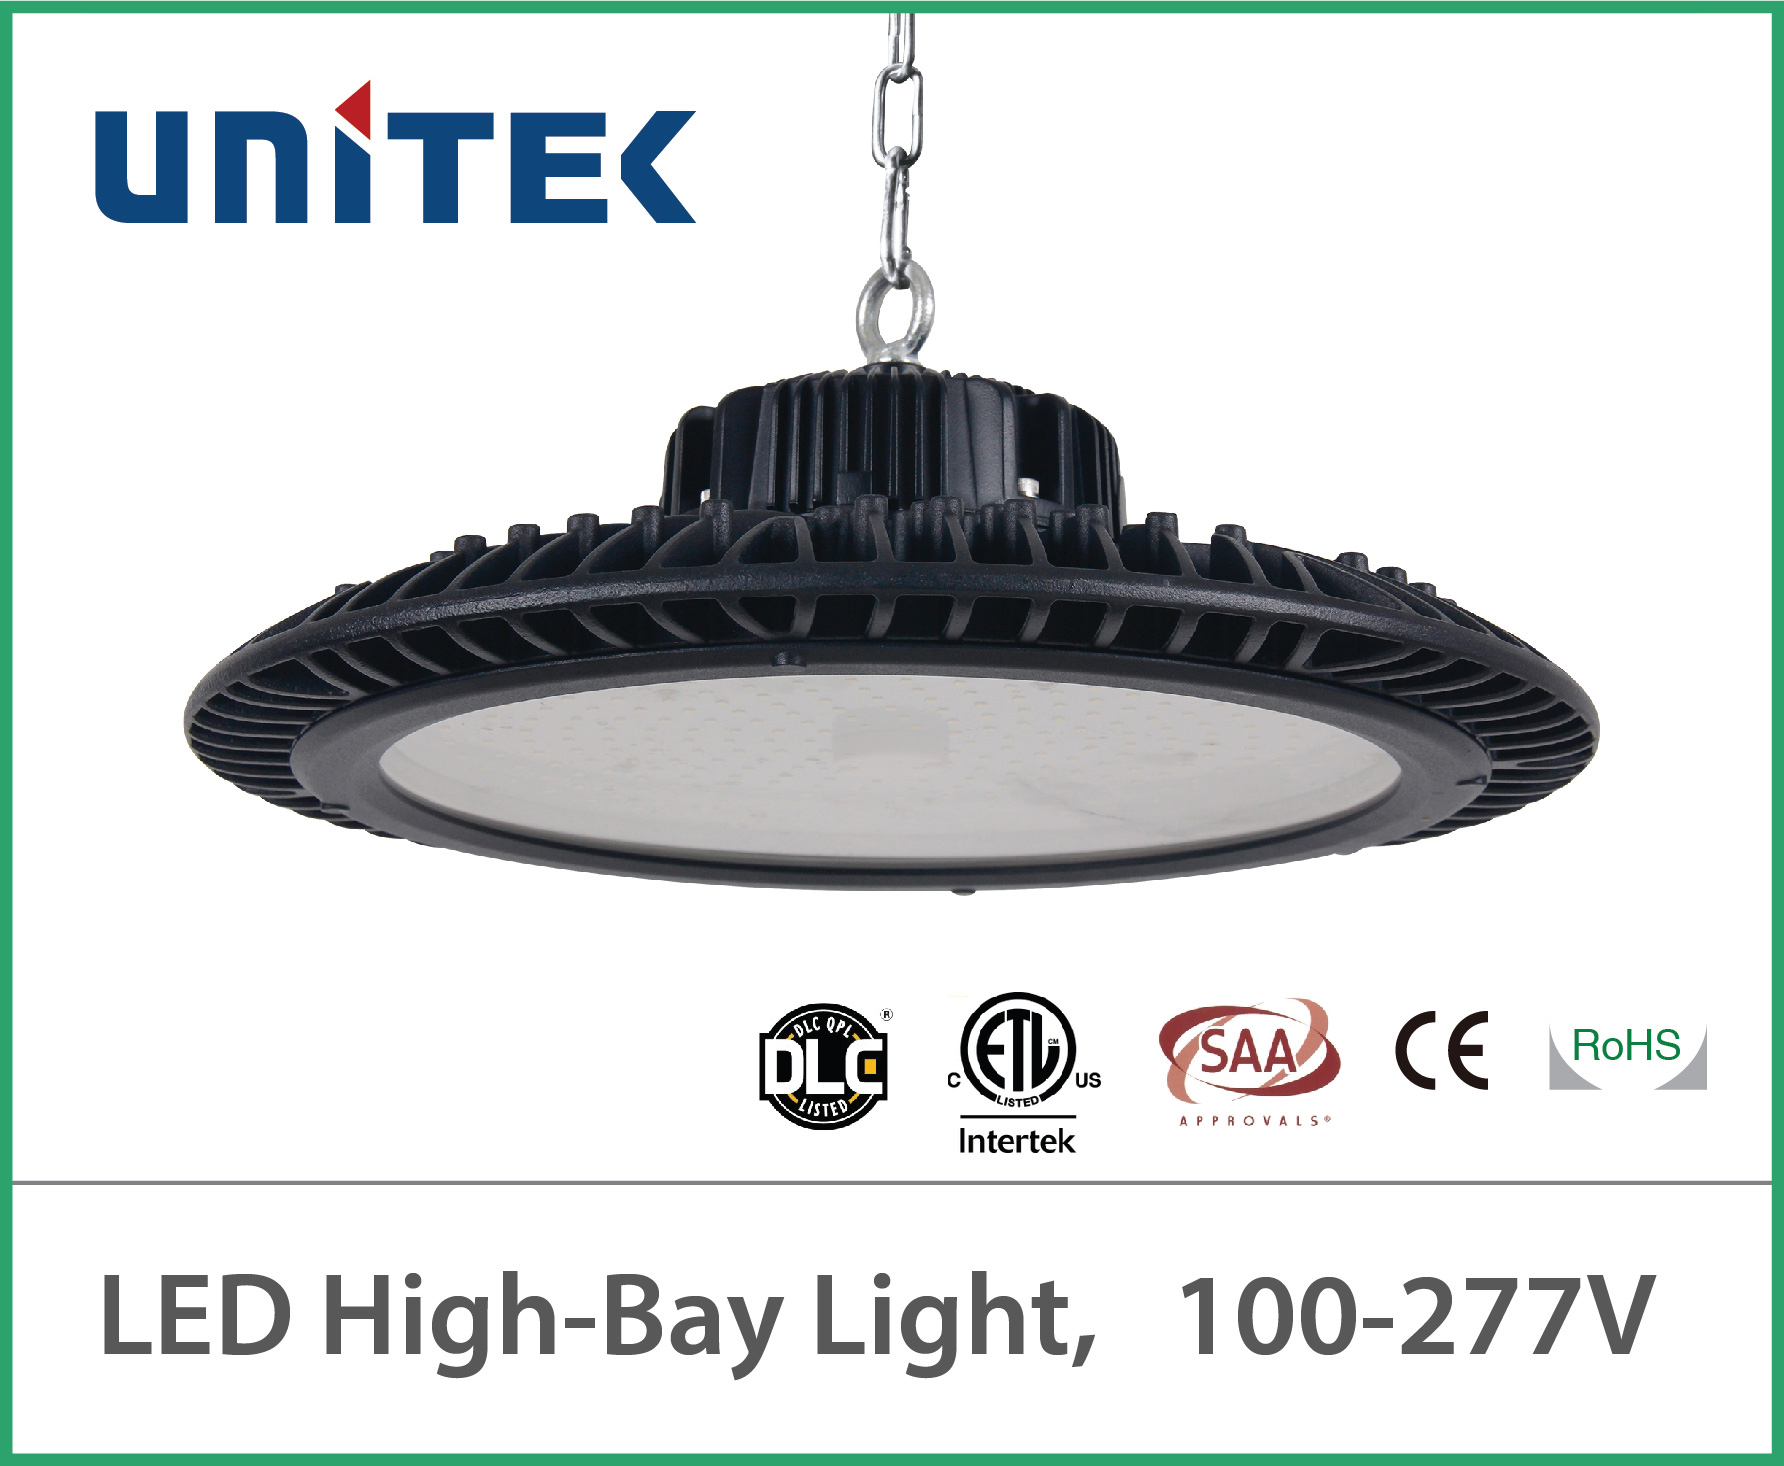 LED HIGH-BAY